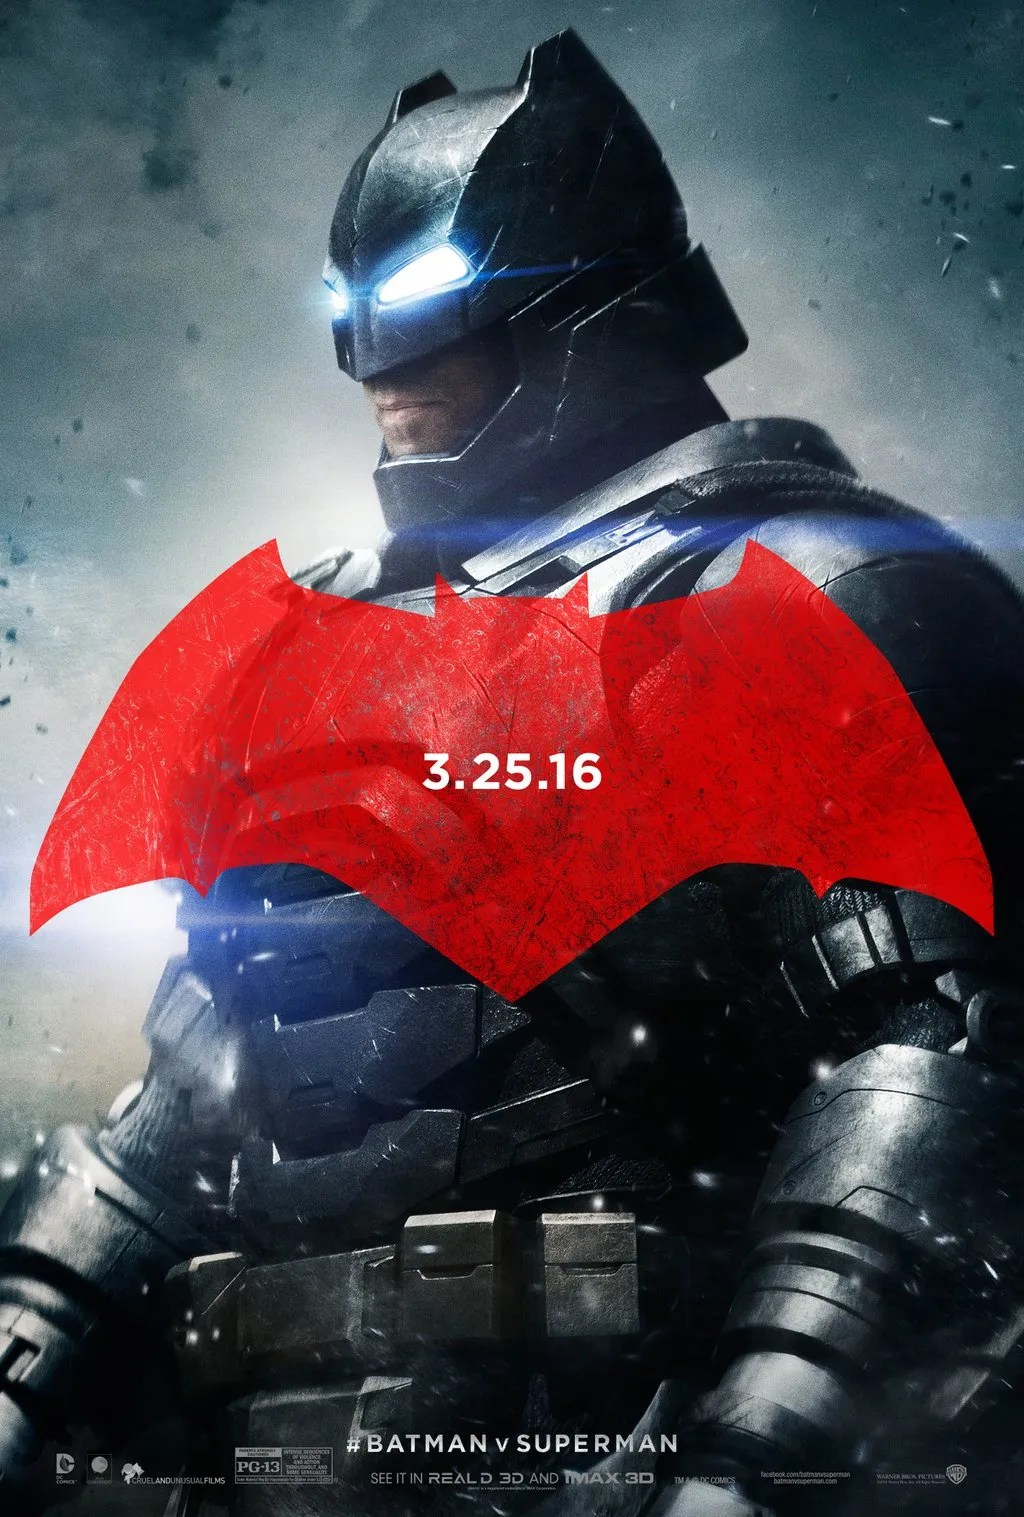 Batman Vs Superman Rrated Director's Cut Details Revealed